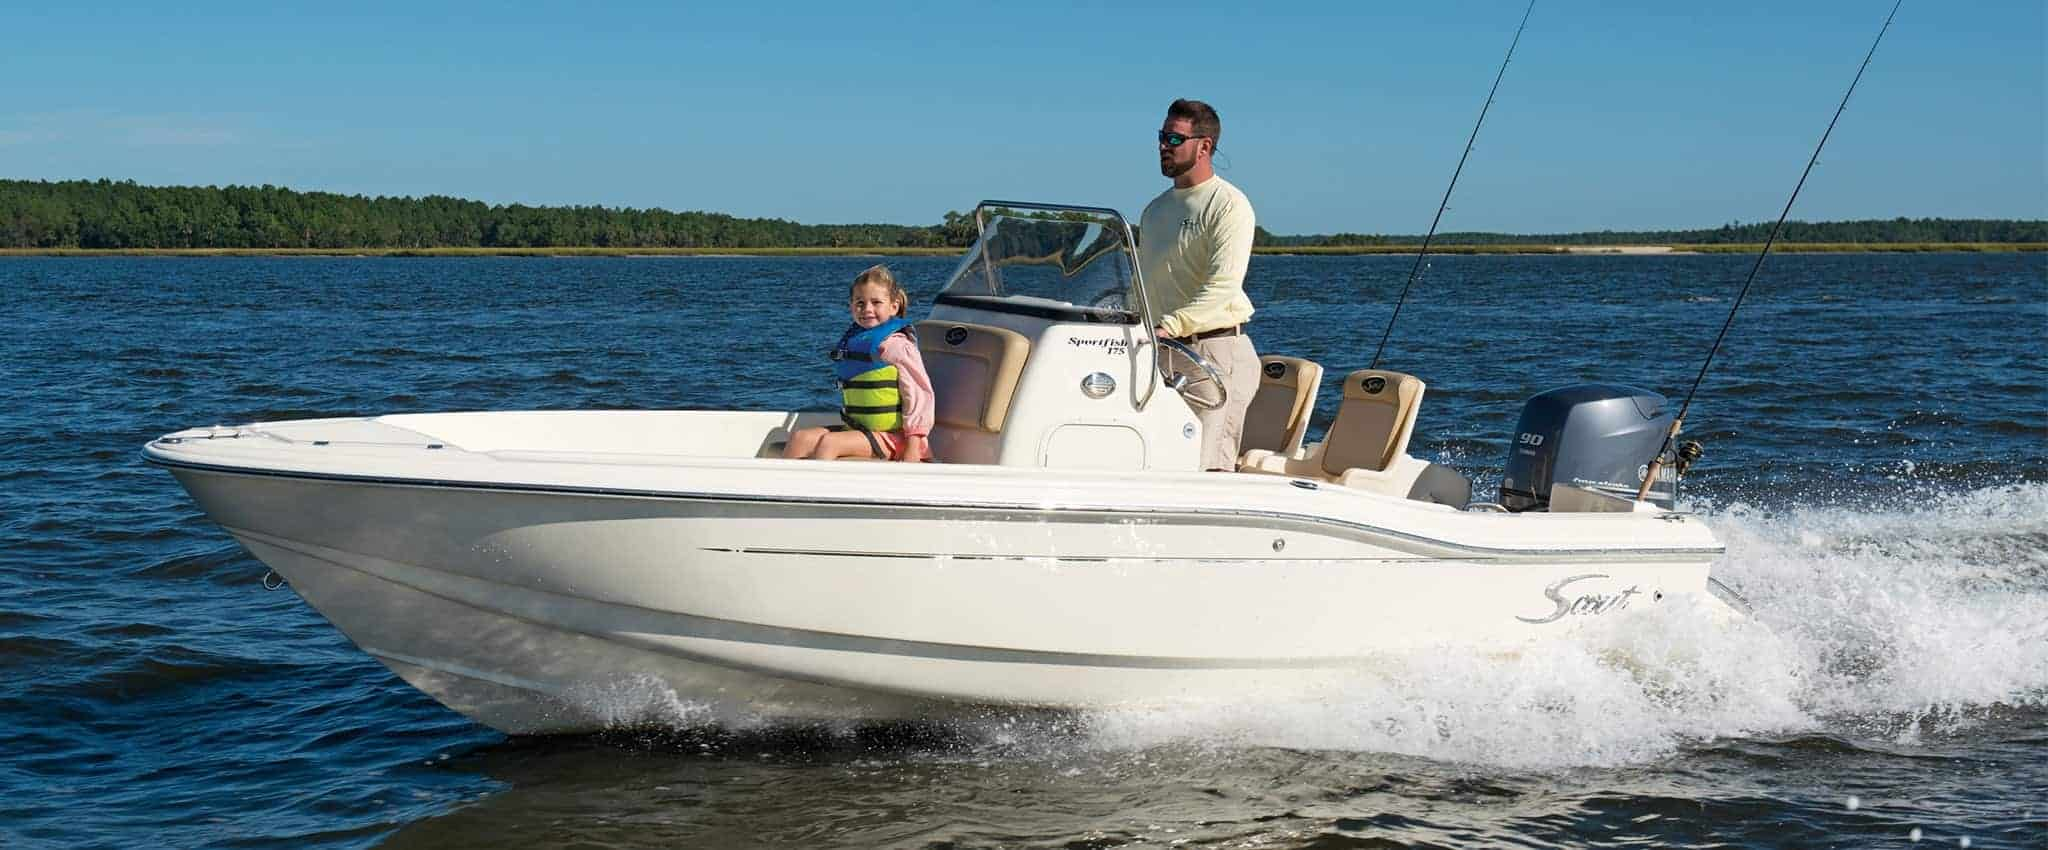 Scout 175 Sportfish - Center Console Sport Fishing Boat